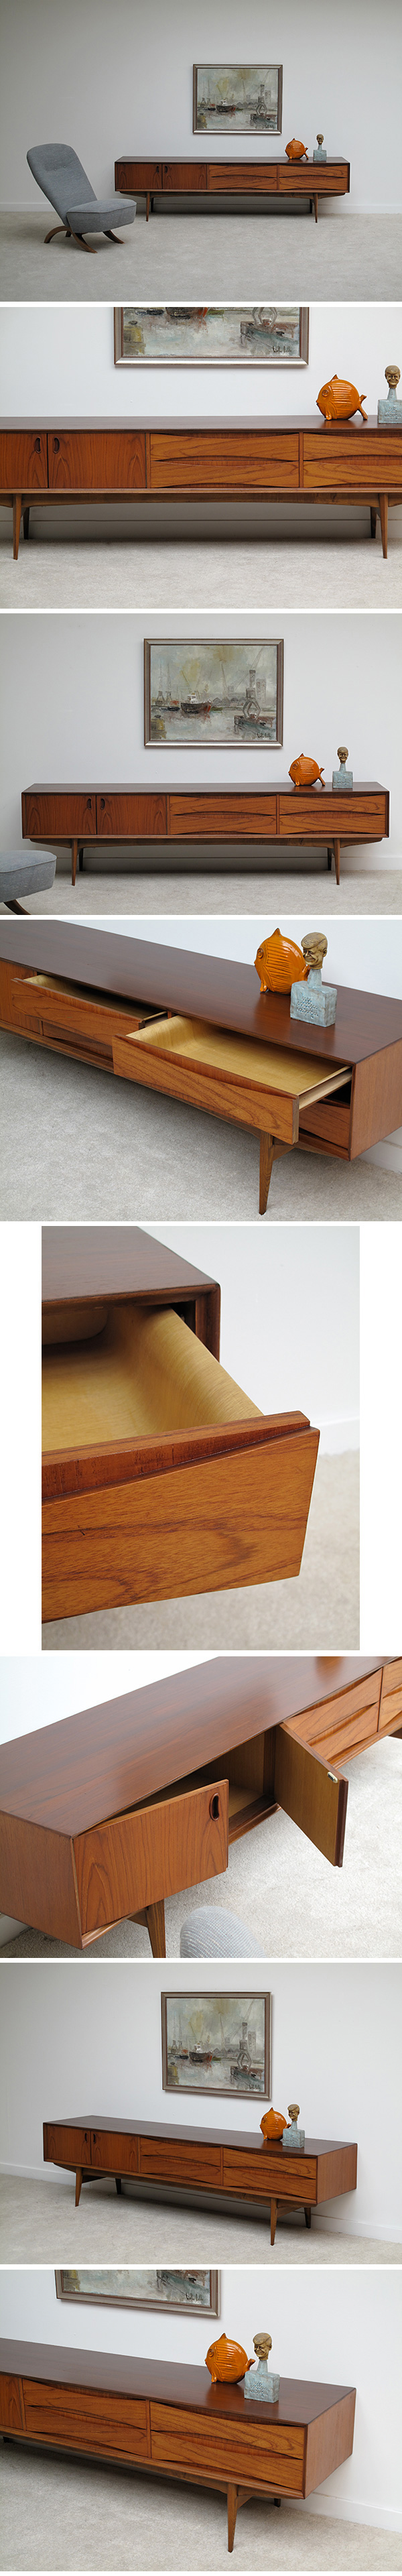 1960s, Oswald, Vermaercke, Ultra, low, V-form, Paola, sideboard